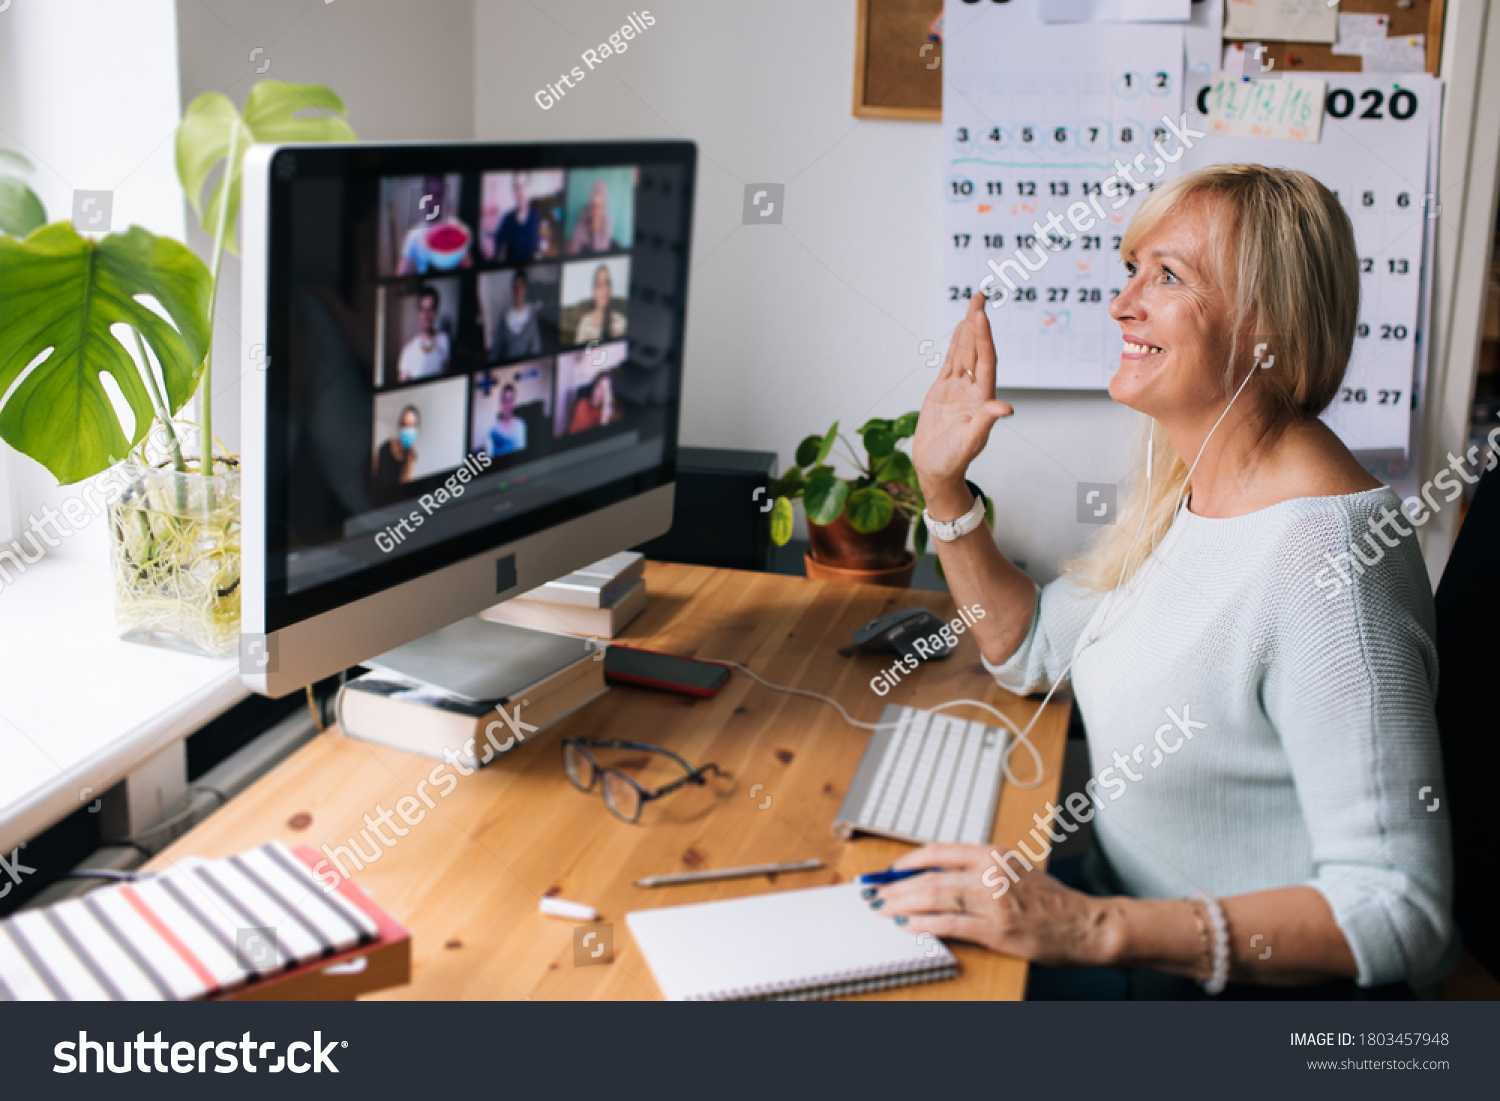 Online training teacher. Day to day new normal office Work from home. Smiling mature woman having video call via laptop in the studio flat office. Daily routine. Business video conferencing.  #1803457948